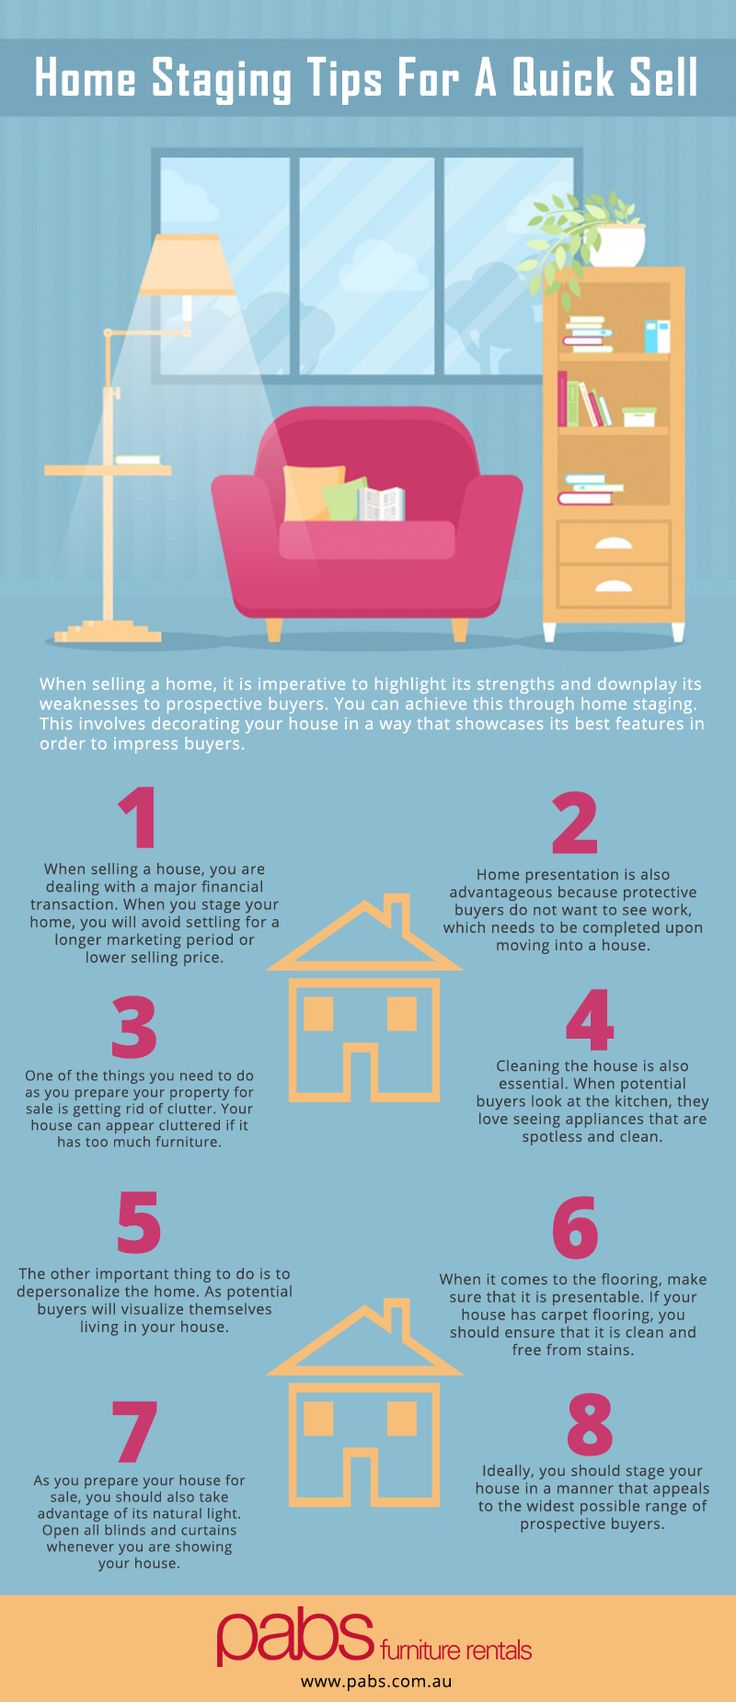 Selling a house can be troublesome. #Homestaging helps in highlighting the strengths and hiding the weaknesses from prospective buyers. Have a look to this Infographic, to know more about home staging tips for a quick sell.